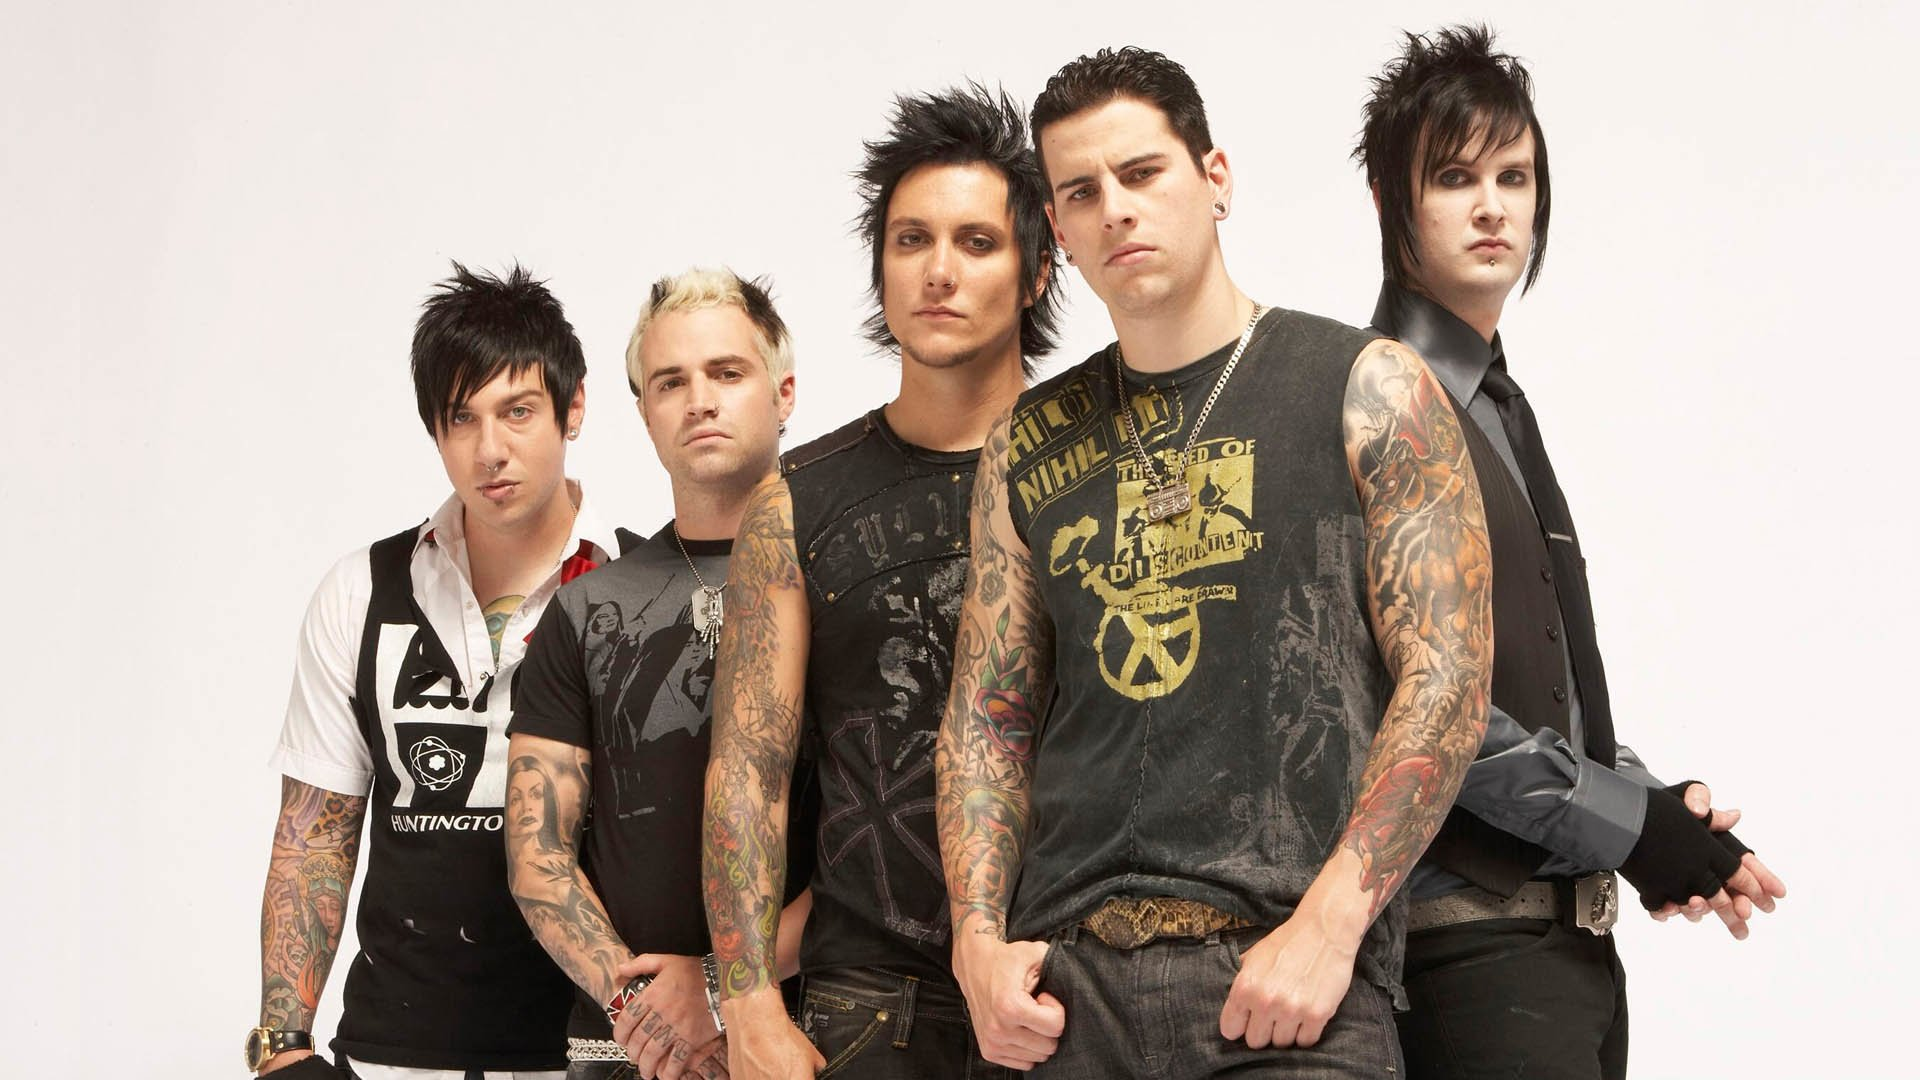 28 avenged sevenfold hd wallpapers background images wallpaper avenged sevenfold hd wallpaper background image id195560 voltagebd Choice Image